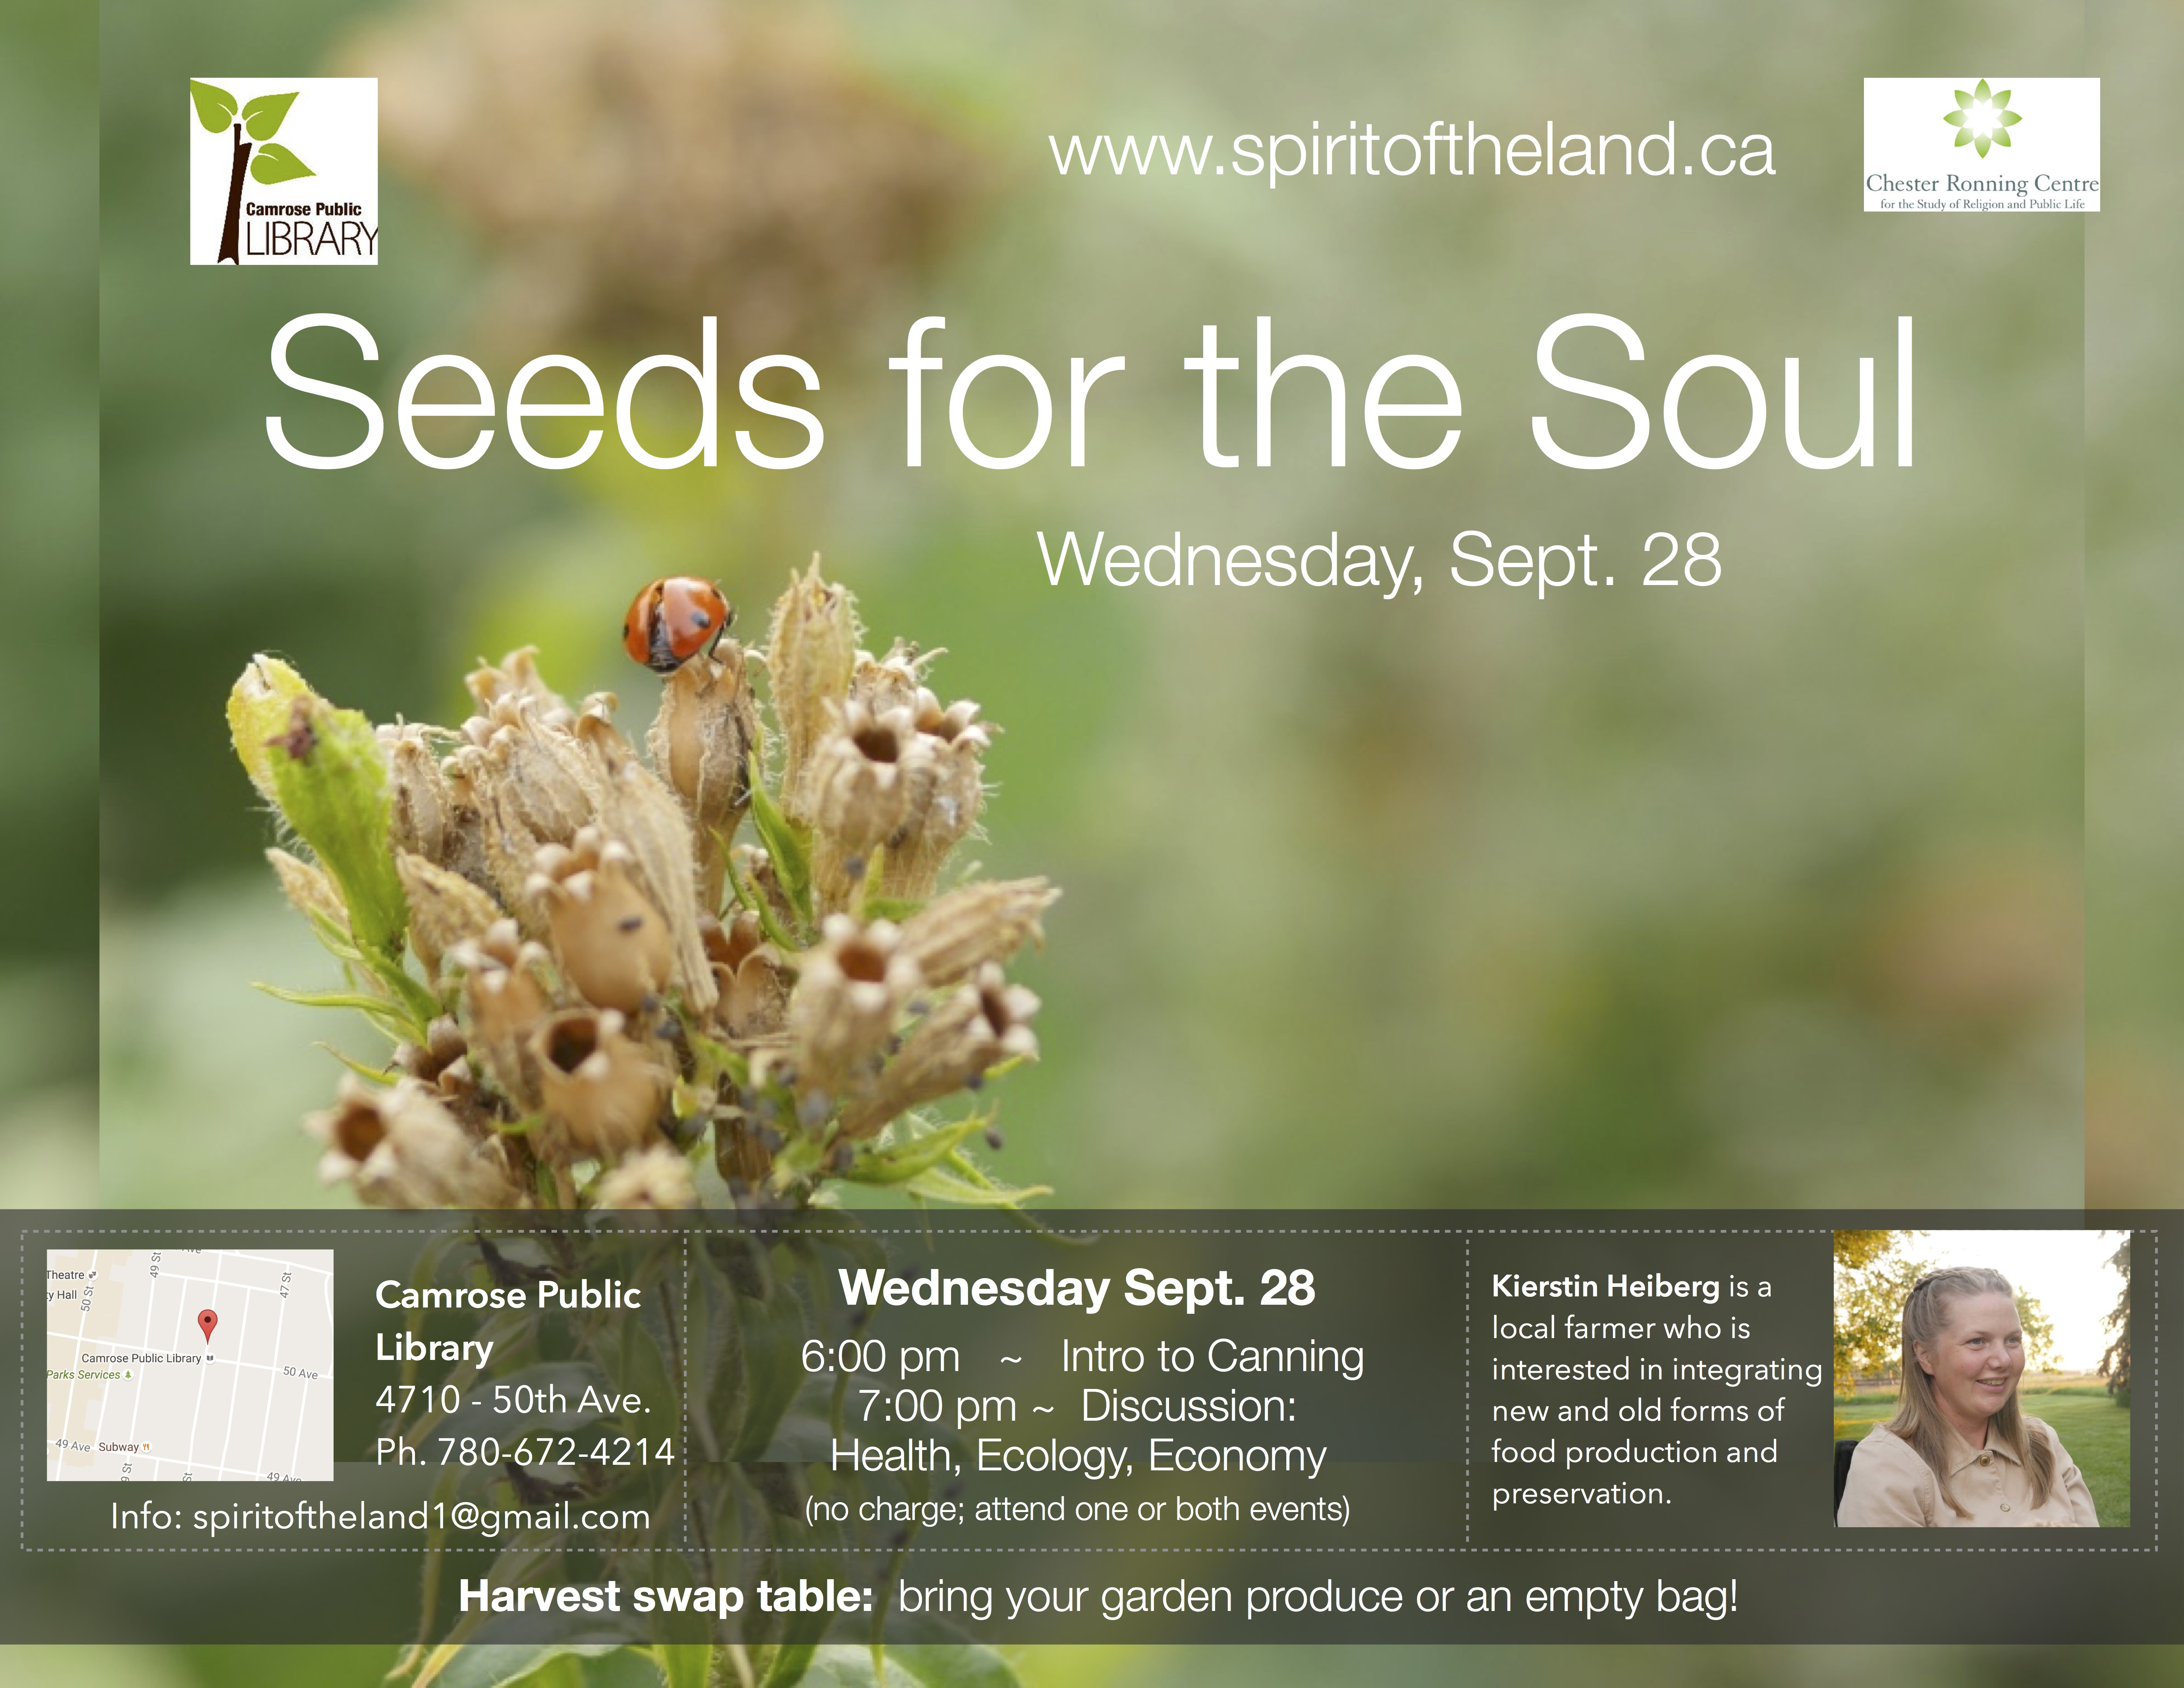 seeds-for-the-soul-poster-sept-28-2016-jpeg